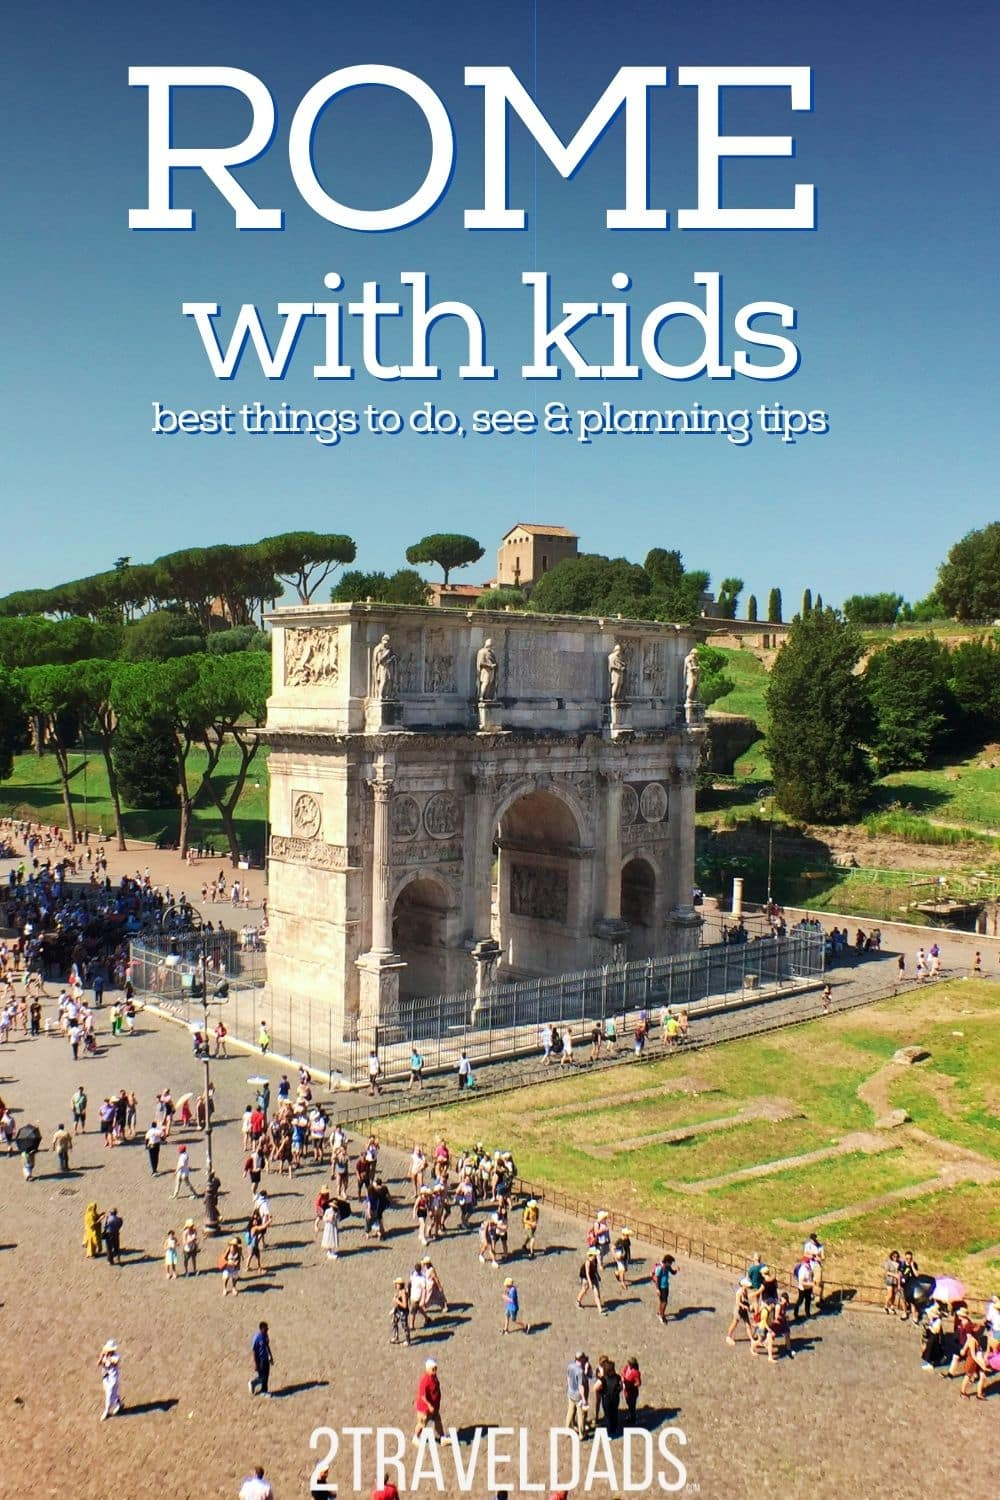 Rome with kids is an exciting trip not to be forgotten. Tips for planning, where to stay and best things to do in Rome with kids.